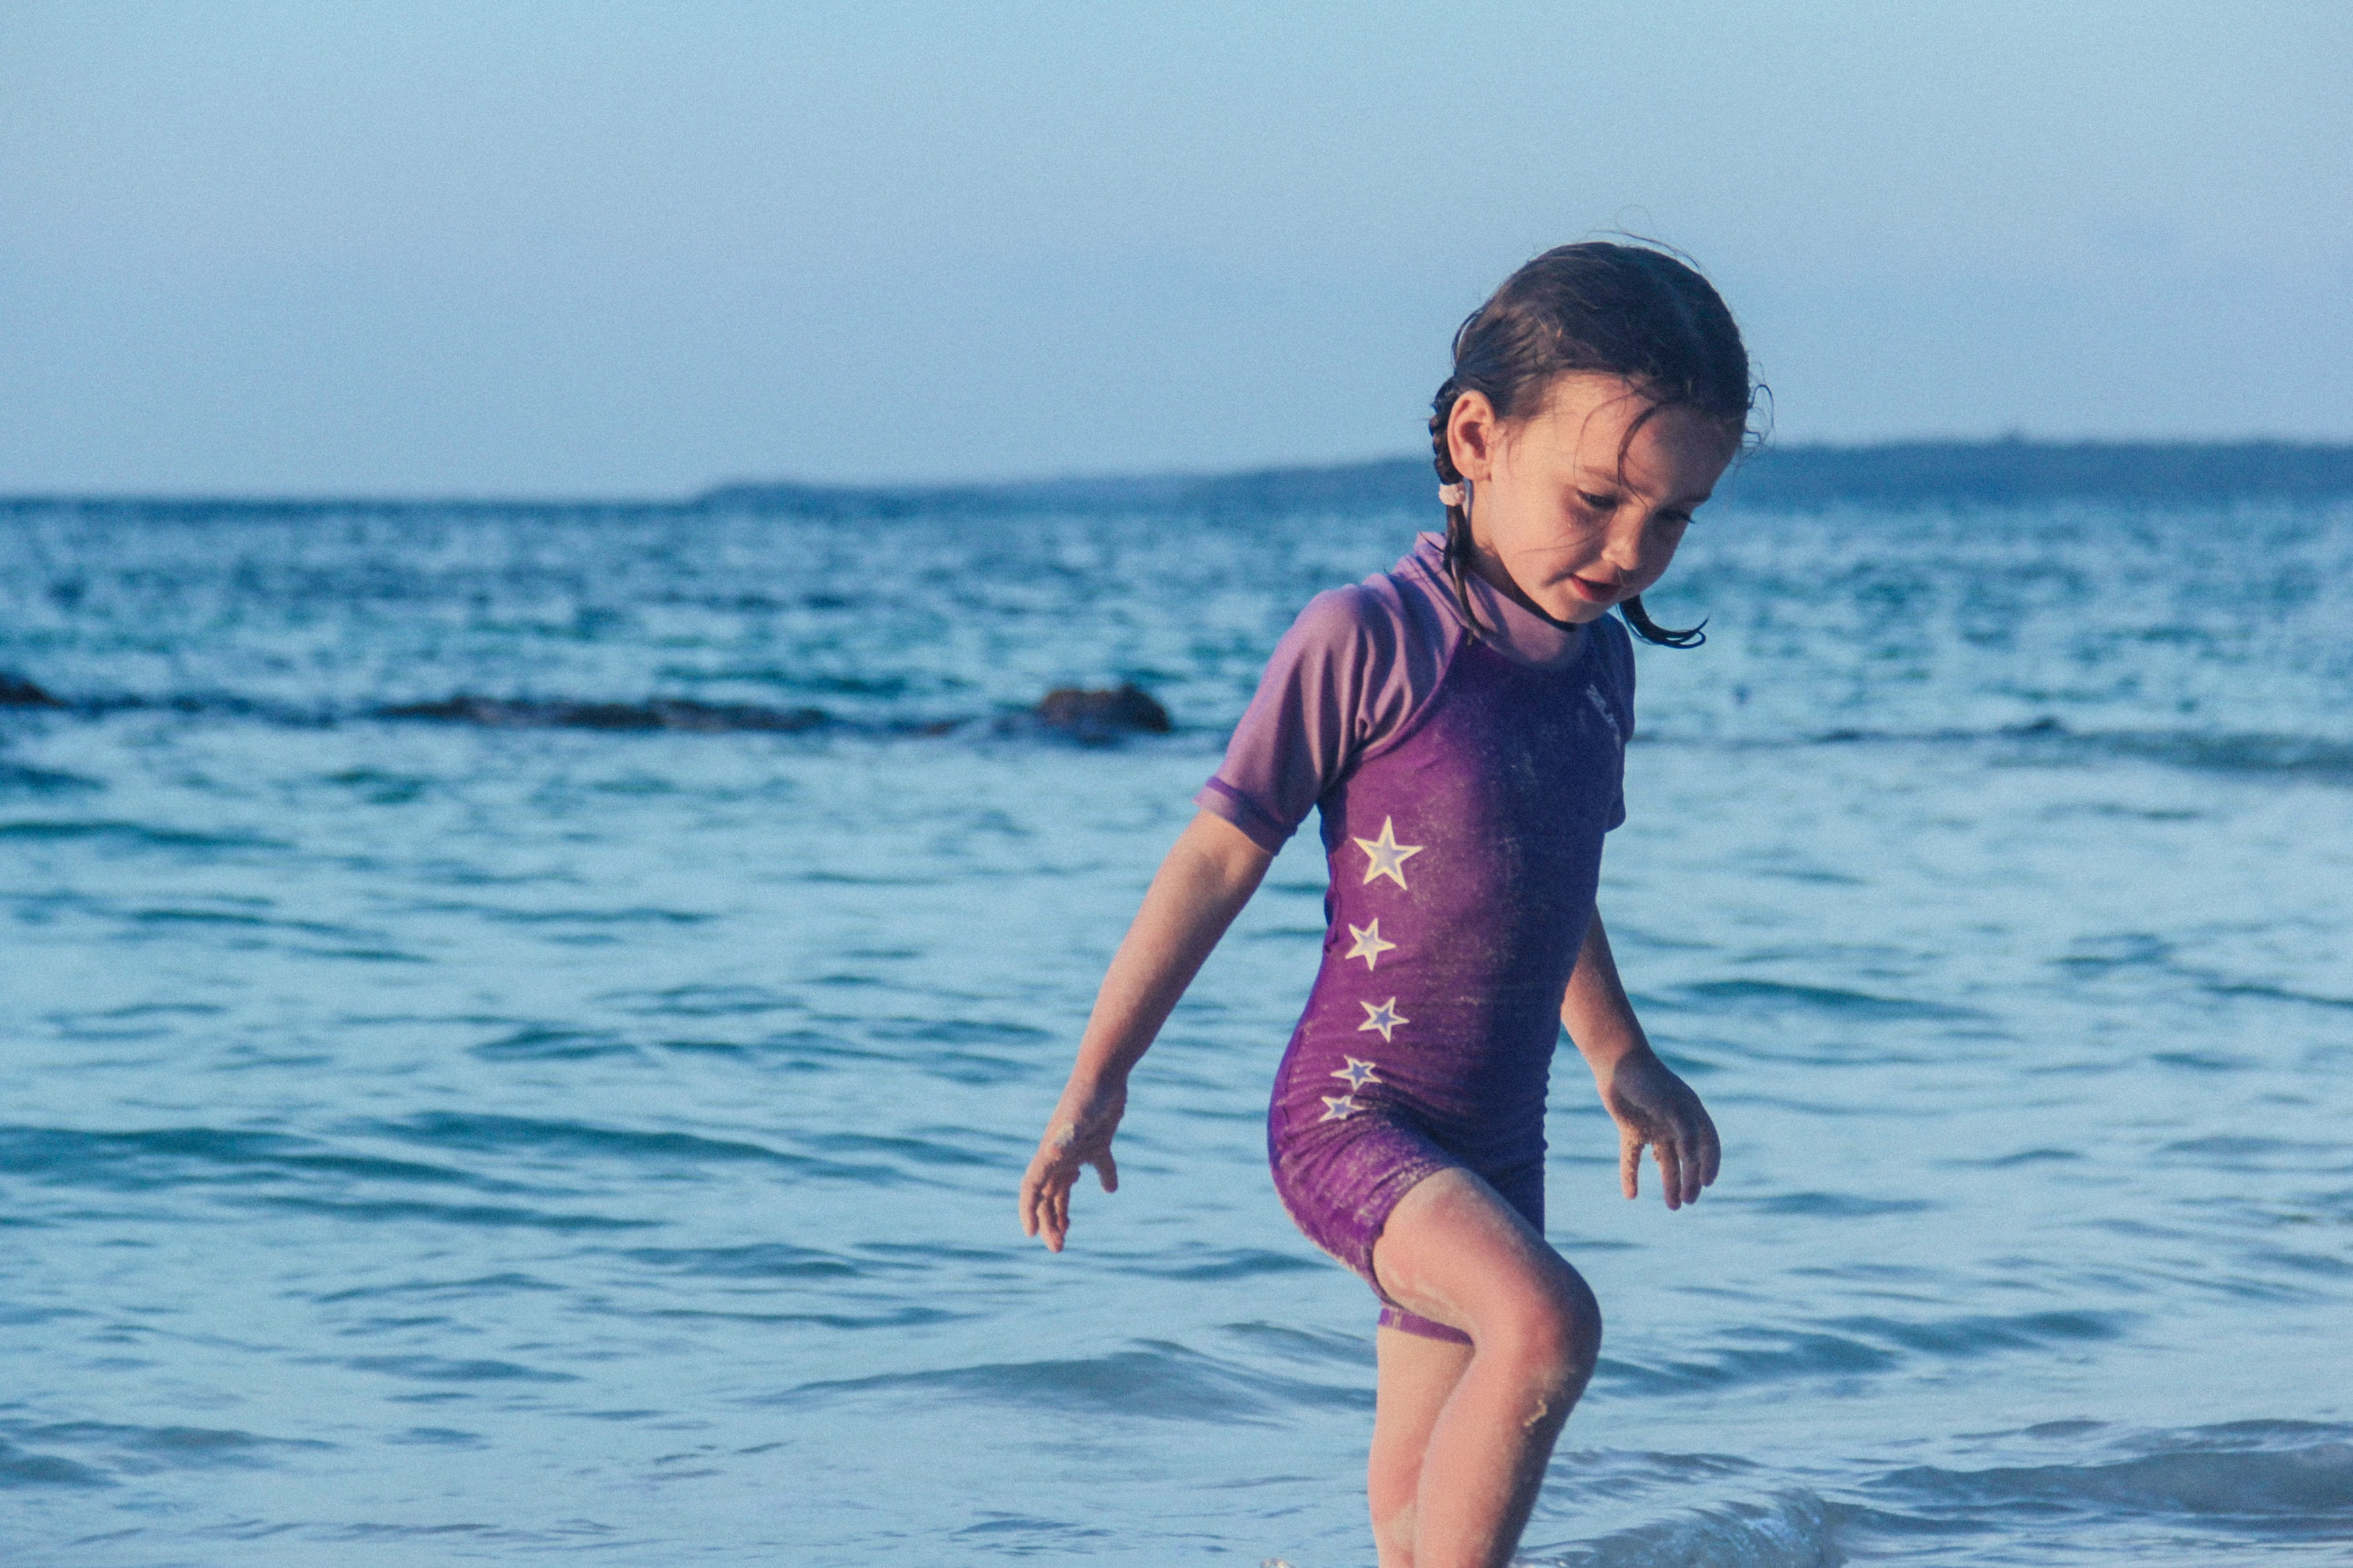 Female child in a purple swimsuit, covered in sand walking out of beach waters